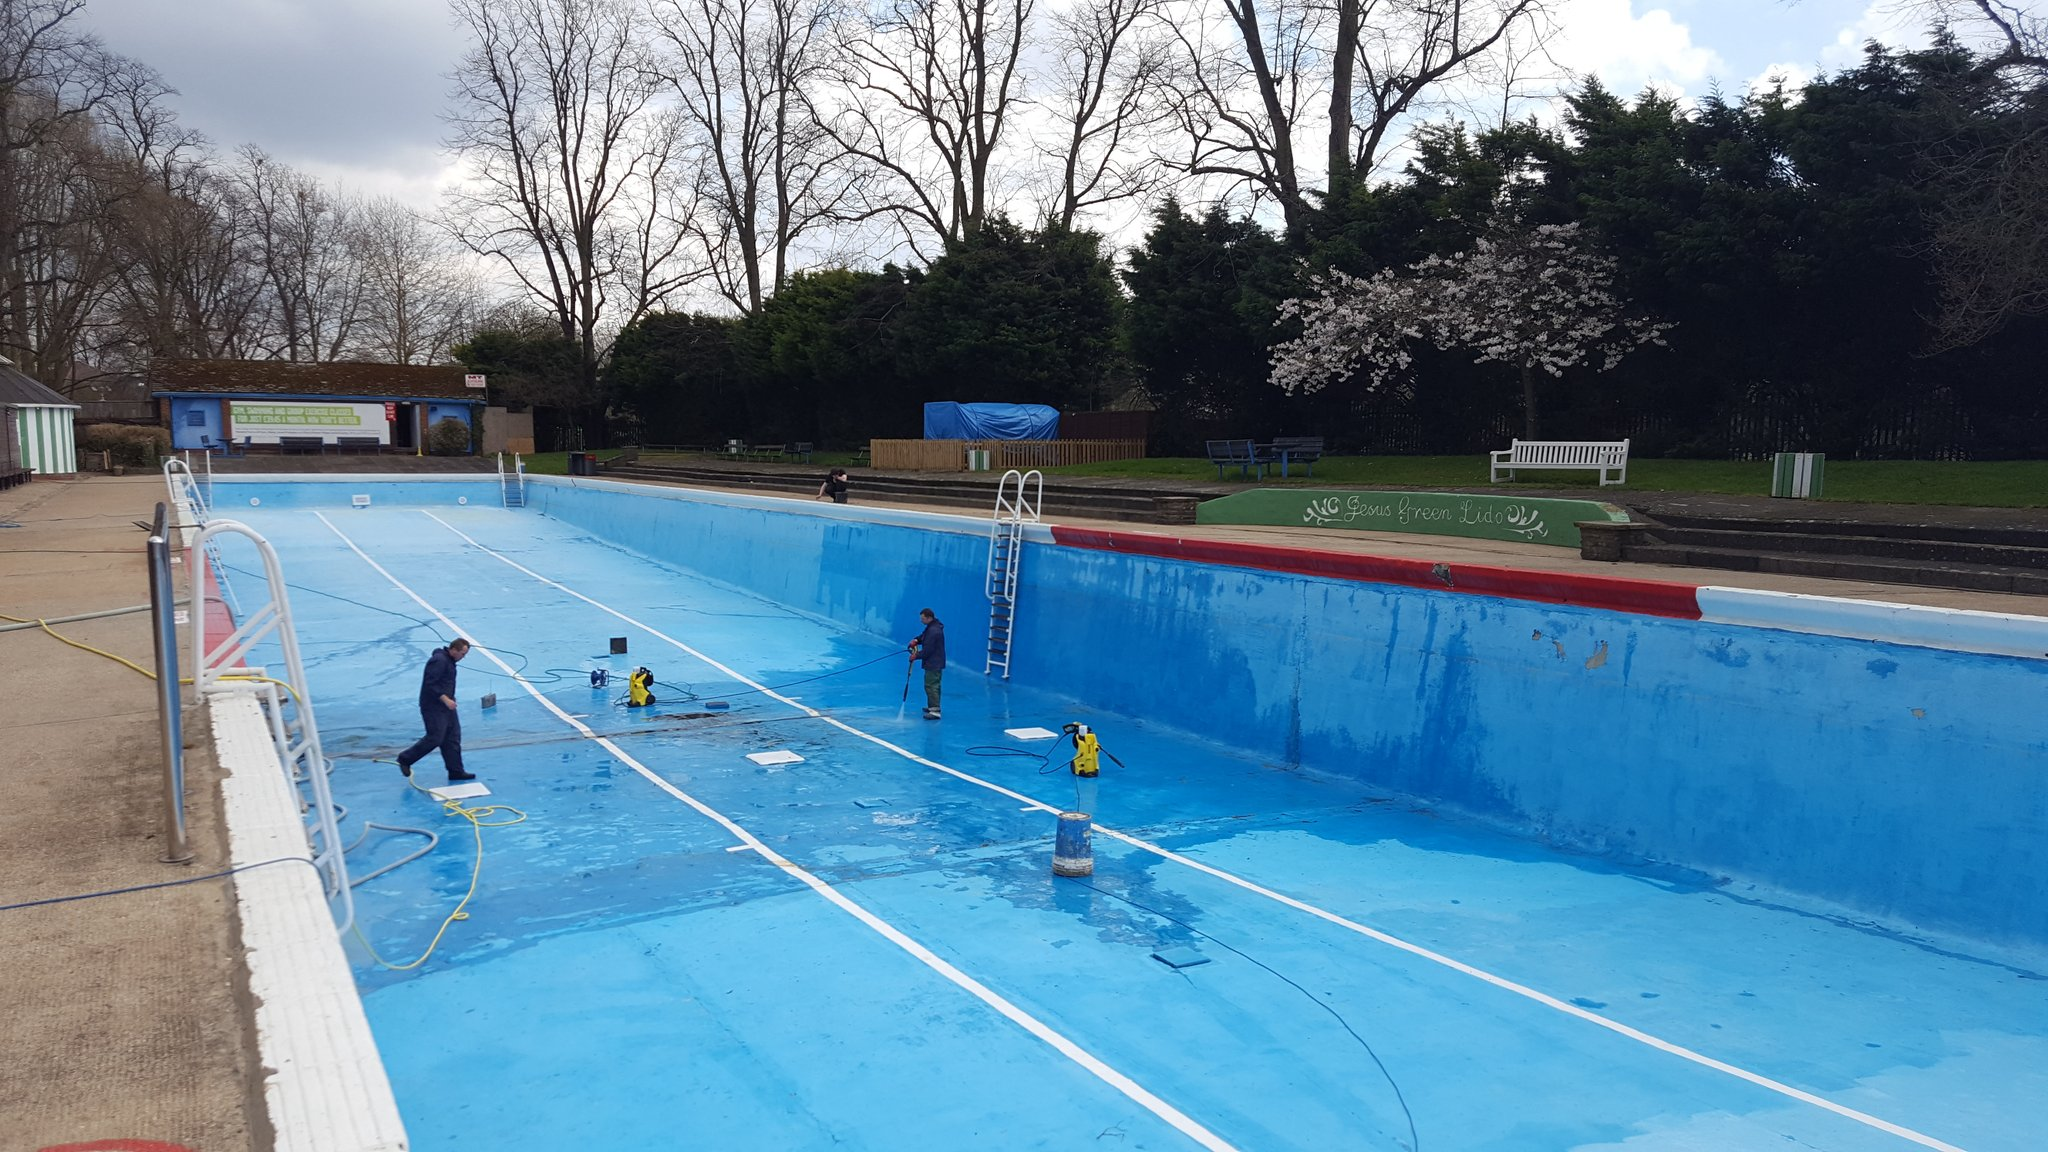 Jesus green lido on twitter the pool is finally drained and almost cleaned next step painting for Jesus green swimming pool cambridge